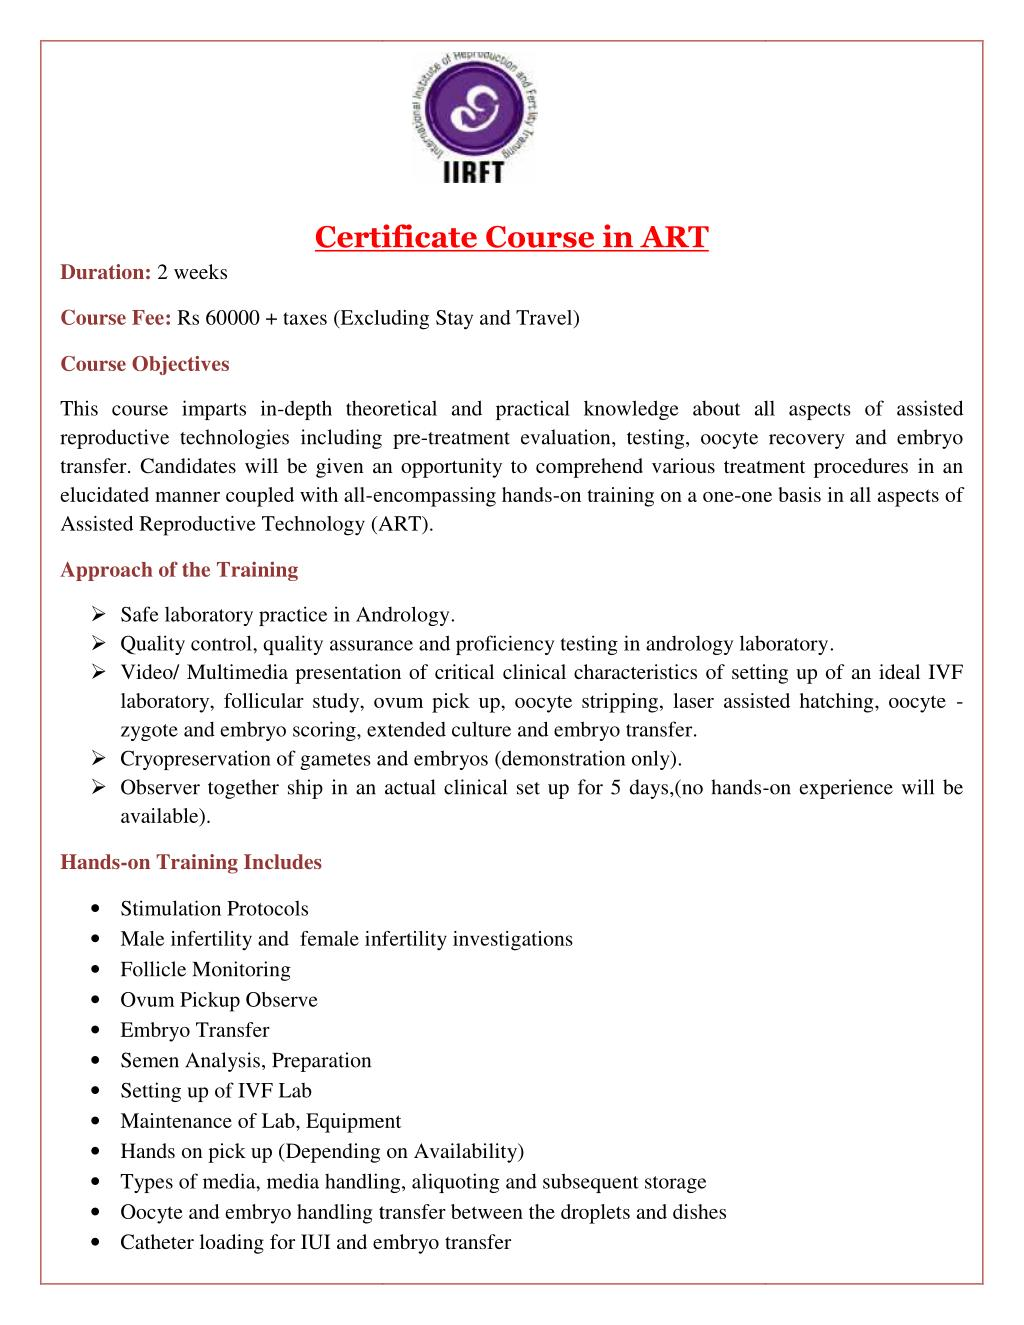 Ppt Certificate Course In Art Hands On Ivf And Icsi Training